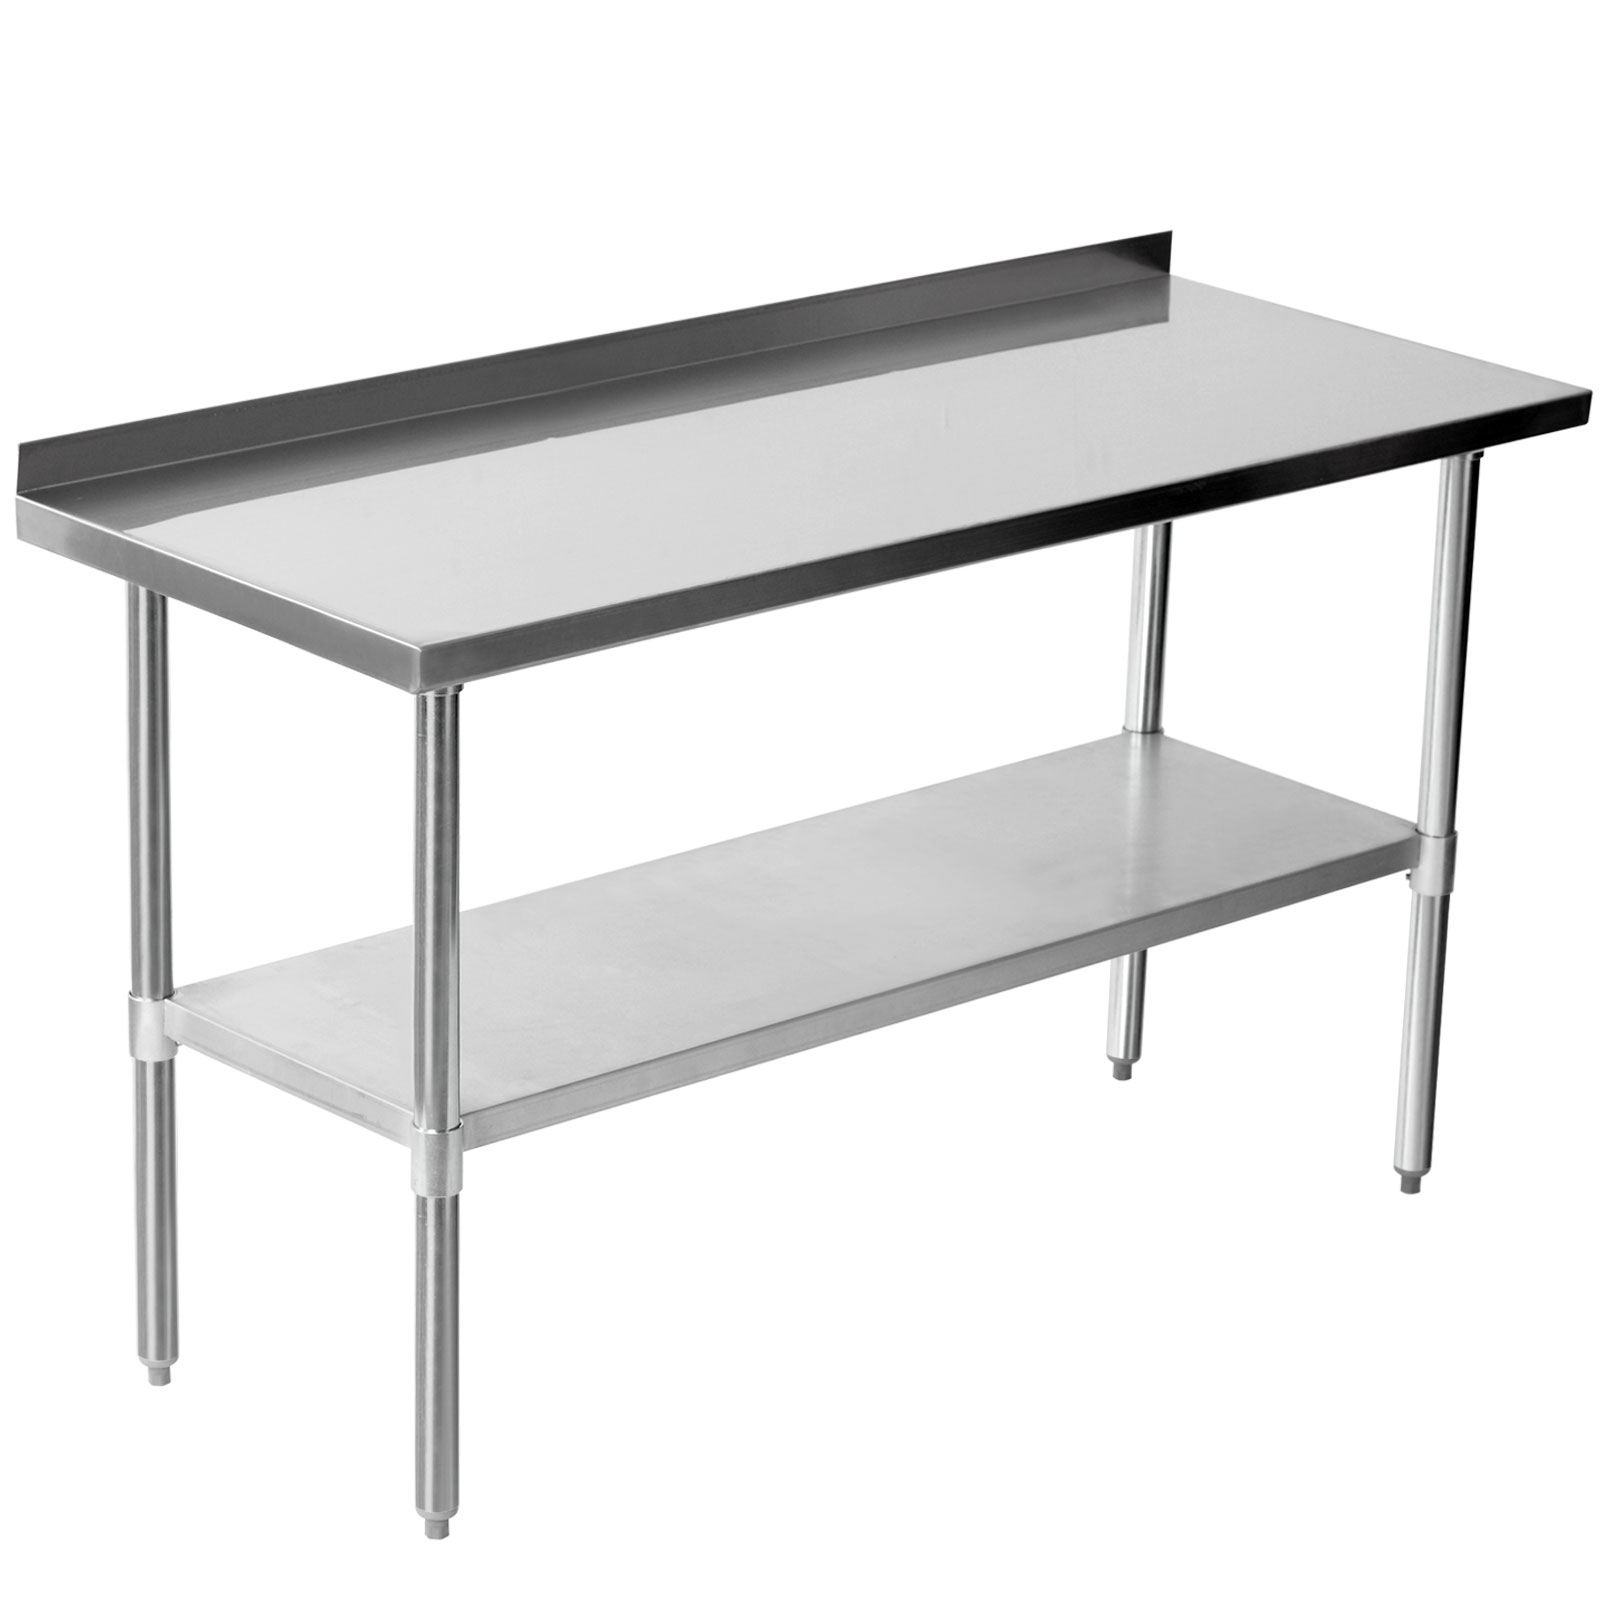 mercial stainless steel work bench kitchen catering table shelf